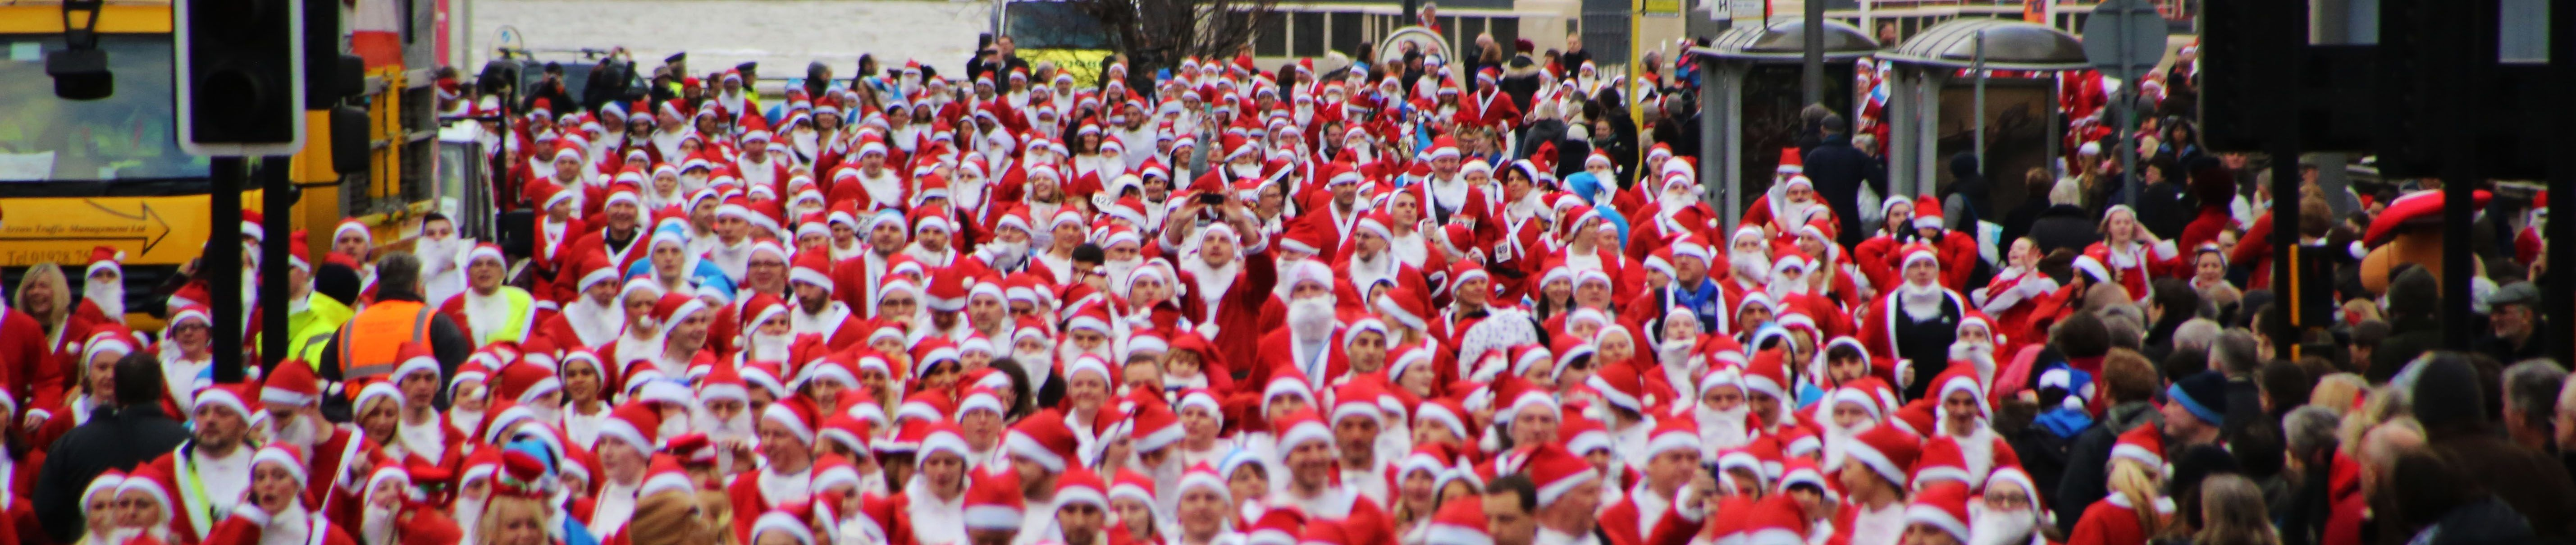 Liverpool Santa Dash - Sunday 2nd December 2018, 09.30 start at the Pier Head